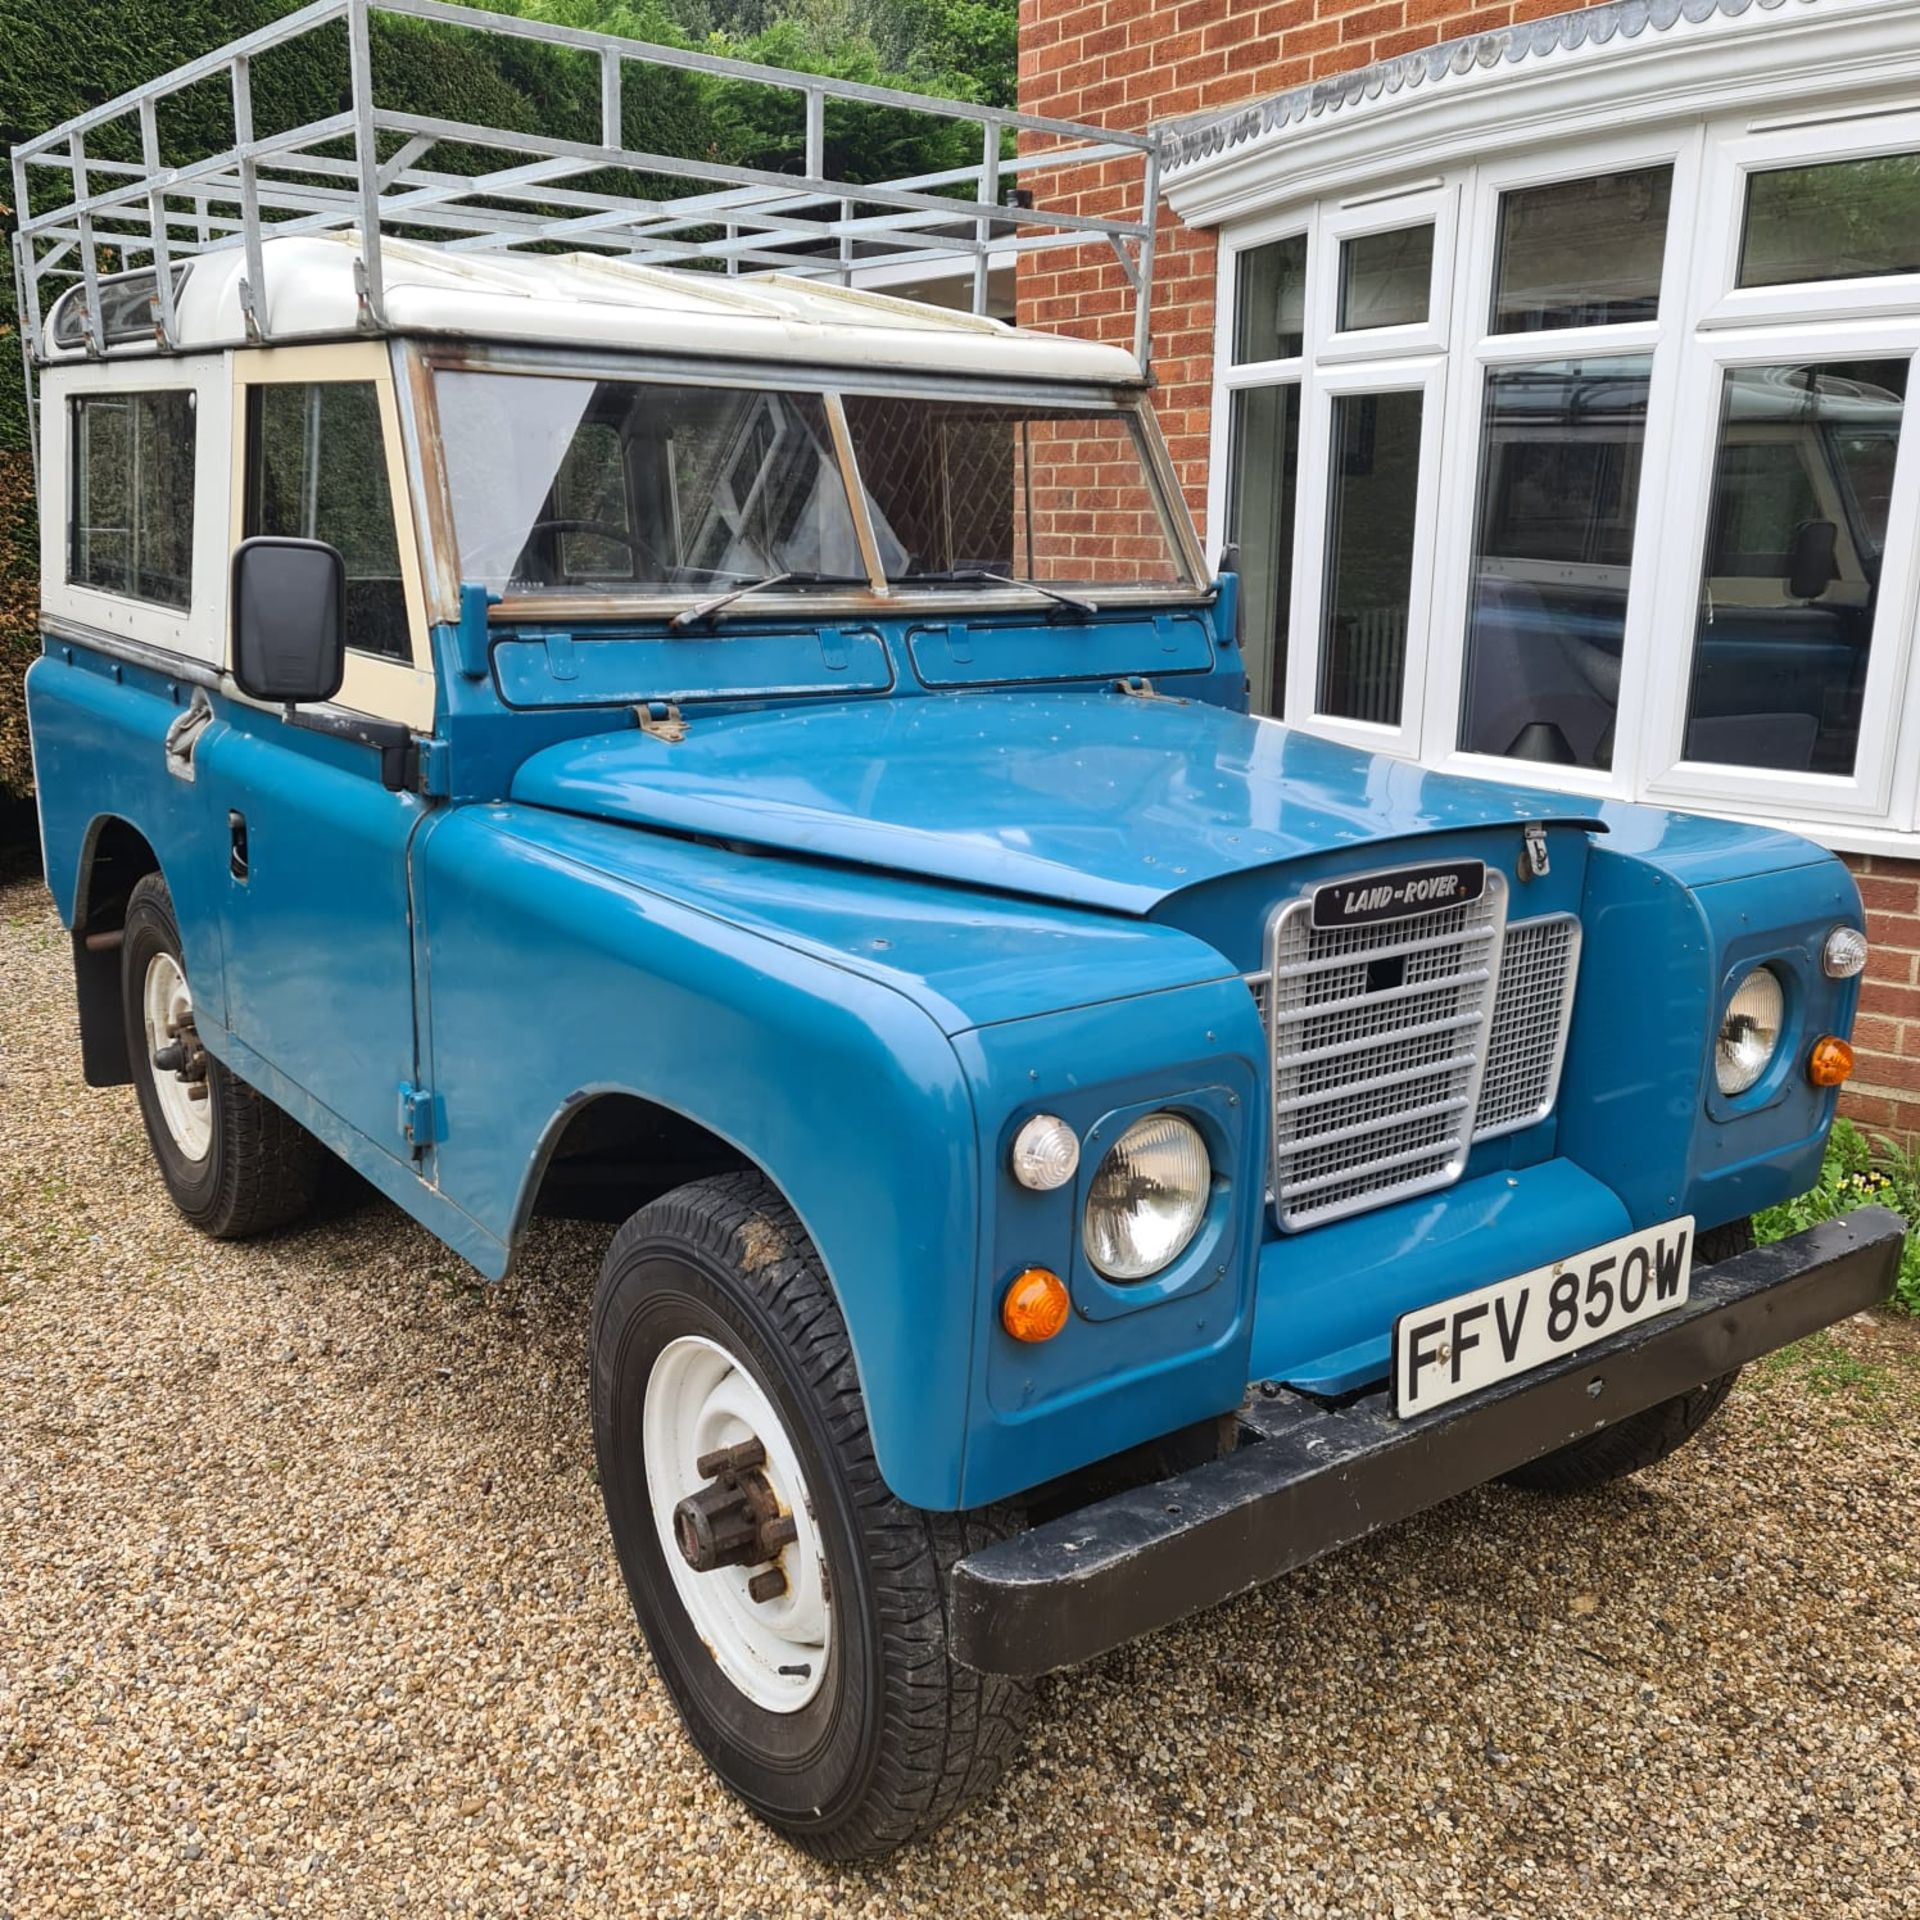 1980 LAND ROVER SERIES III CLASSIC STATION WAGON, TAX AND MOT EXEMPT *NO VAT* - Image 17 of 22